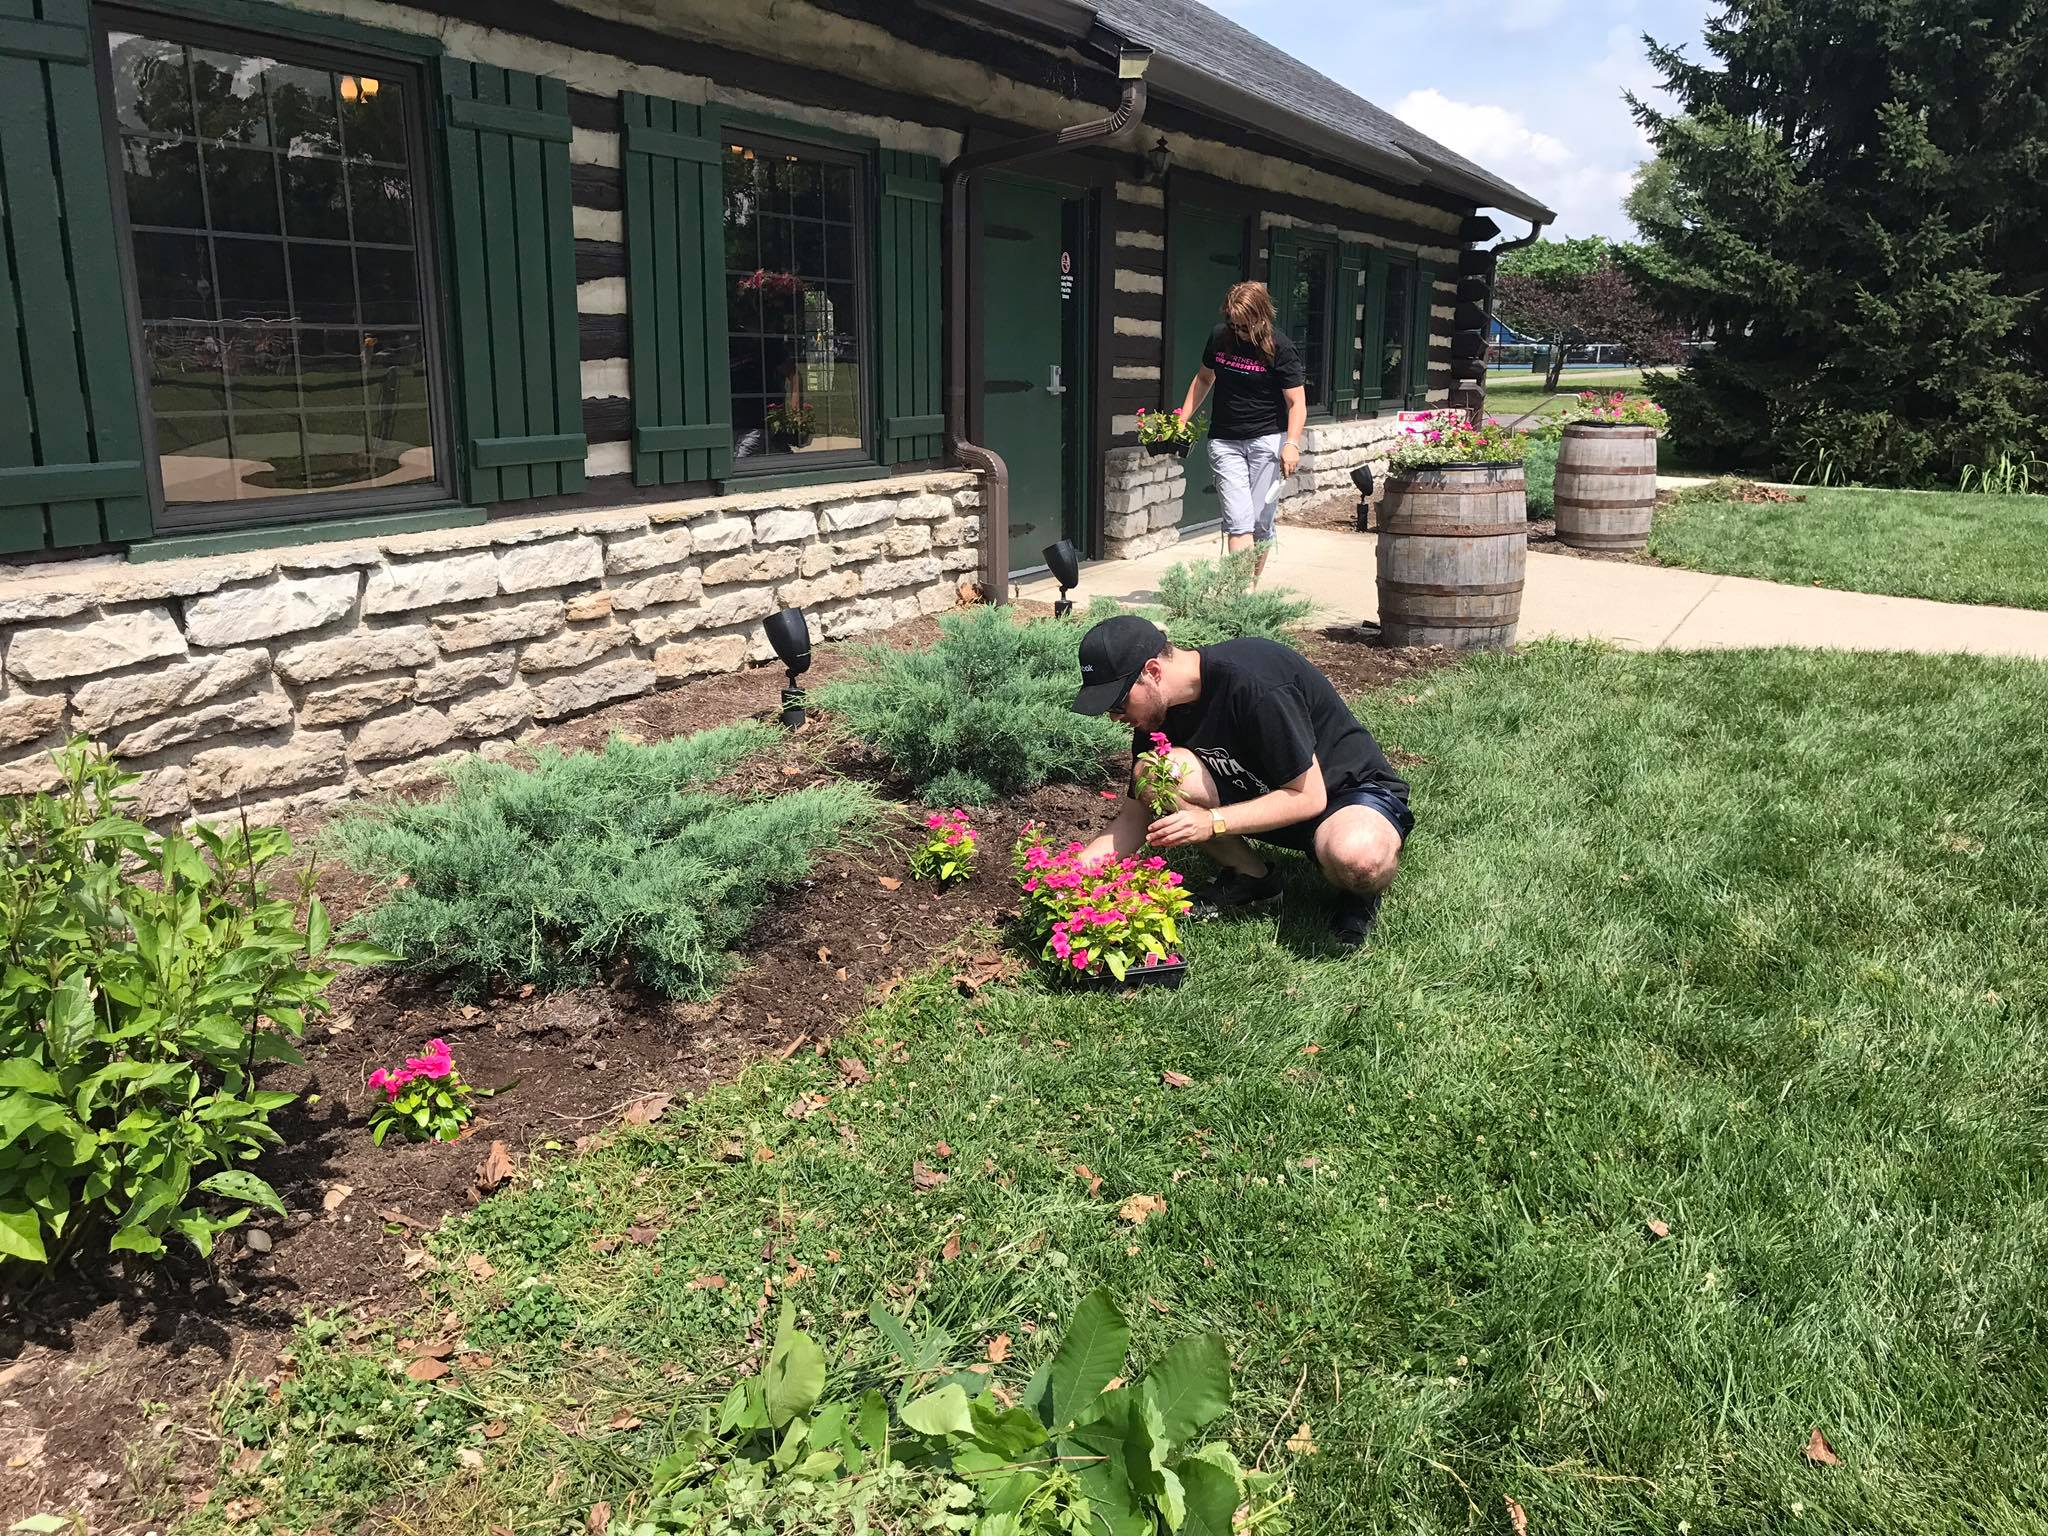 Cleaning up and planting flowers at the Greendale Park, officially adopted by Ohio River Valley Pride Coalition.